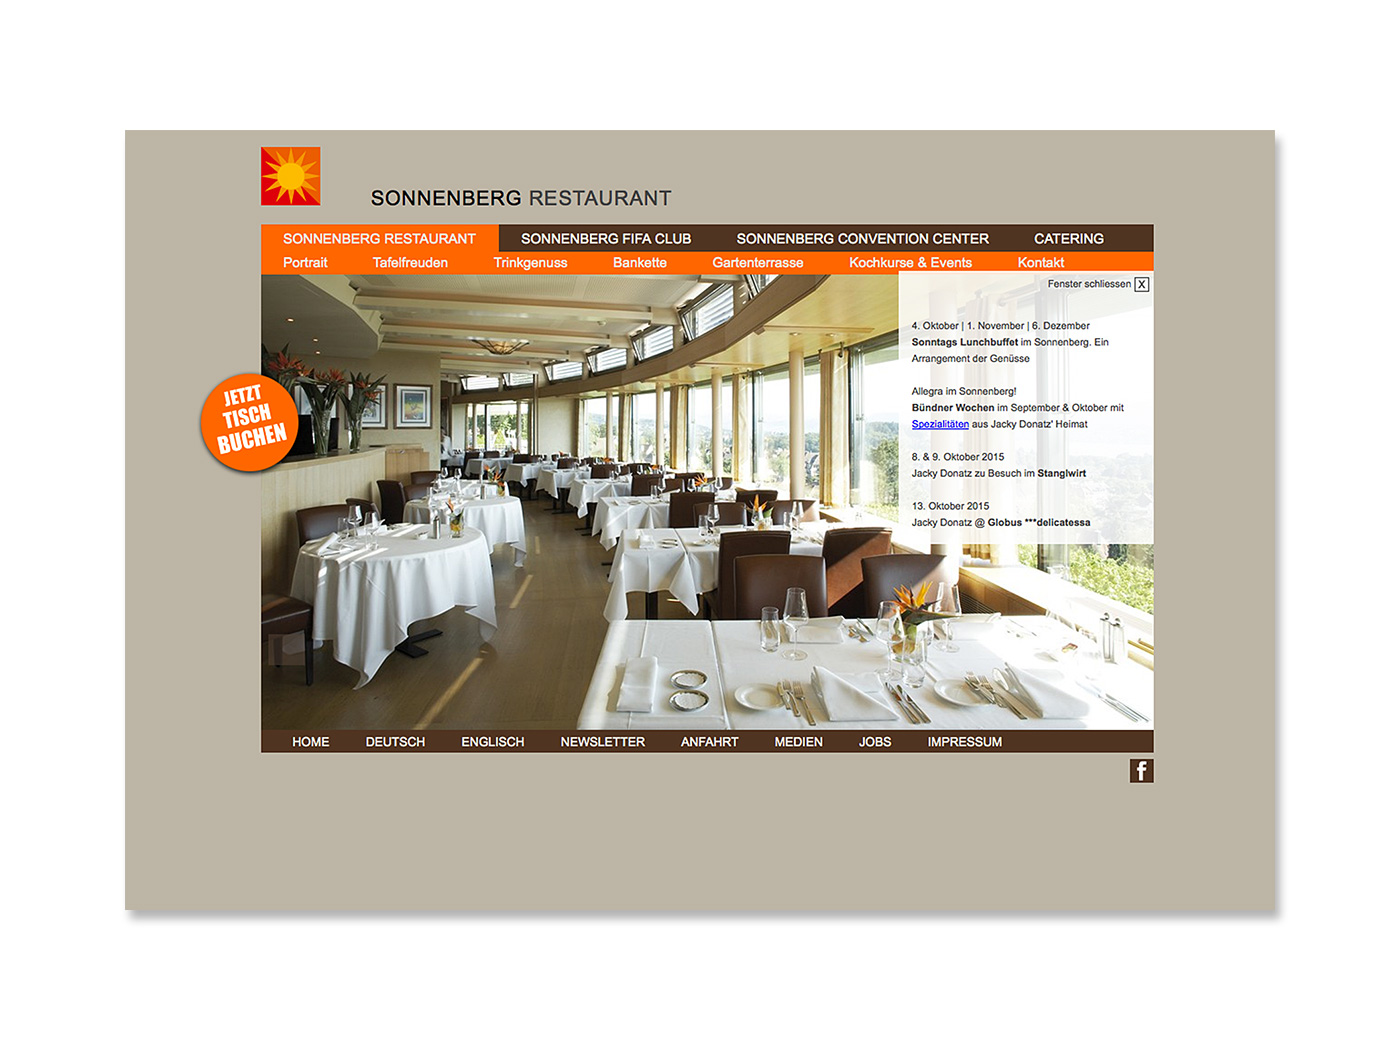 Website, Sonnenberg – Restaurant, Fifa-Club, Convention Center, Catering